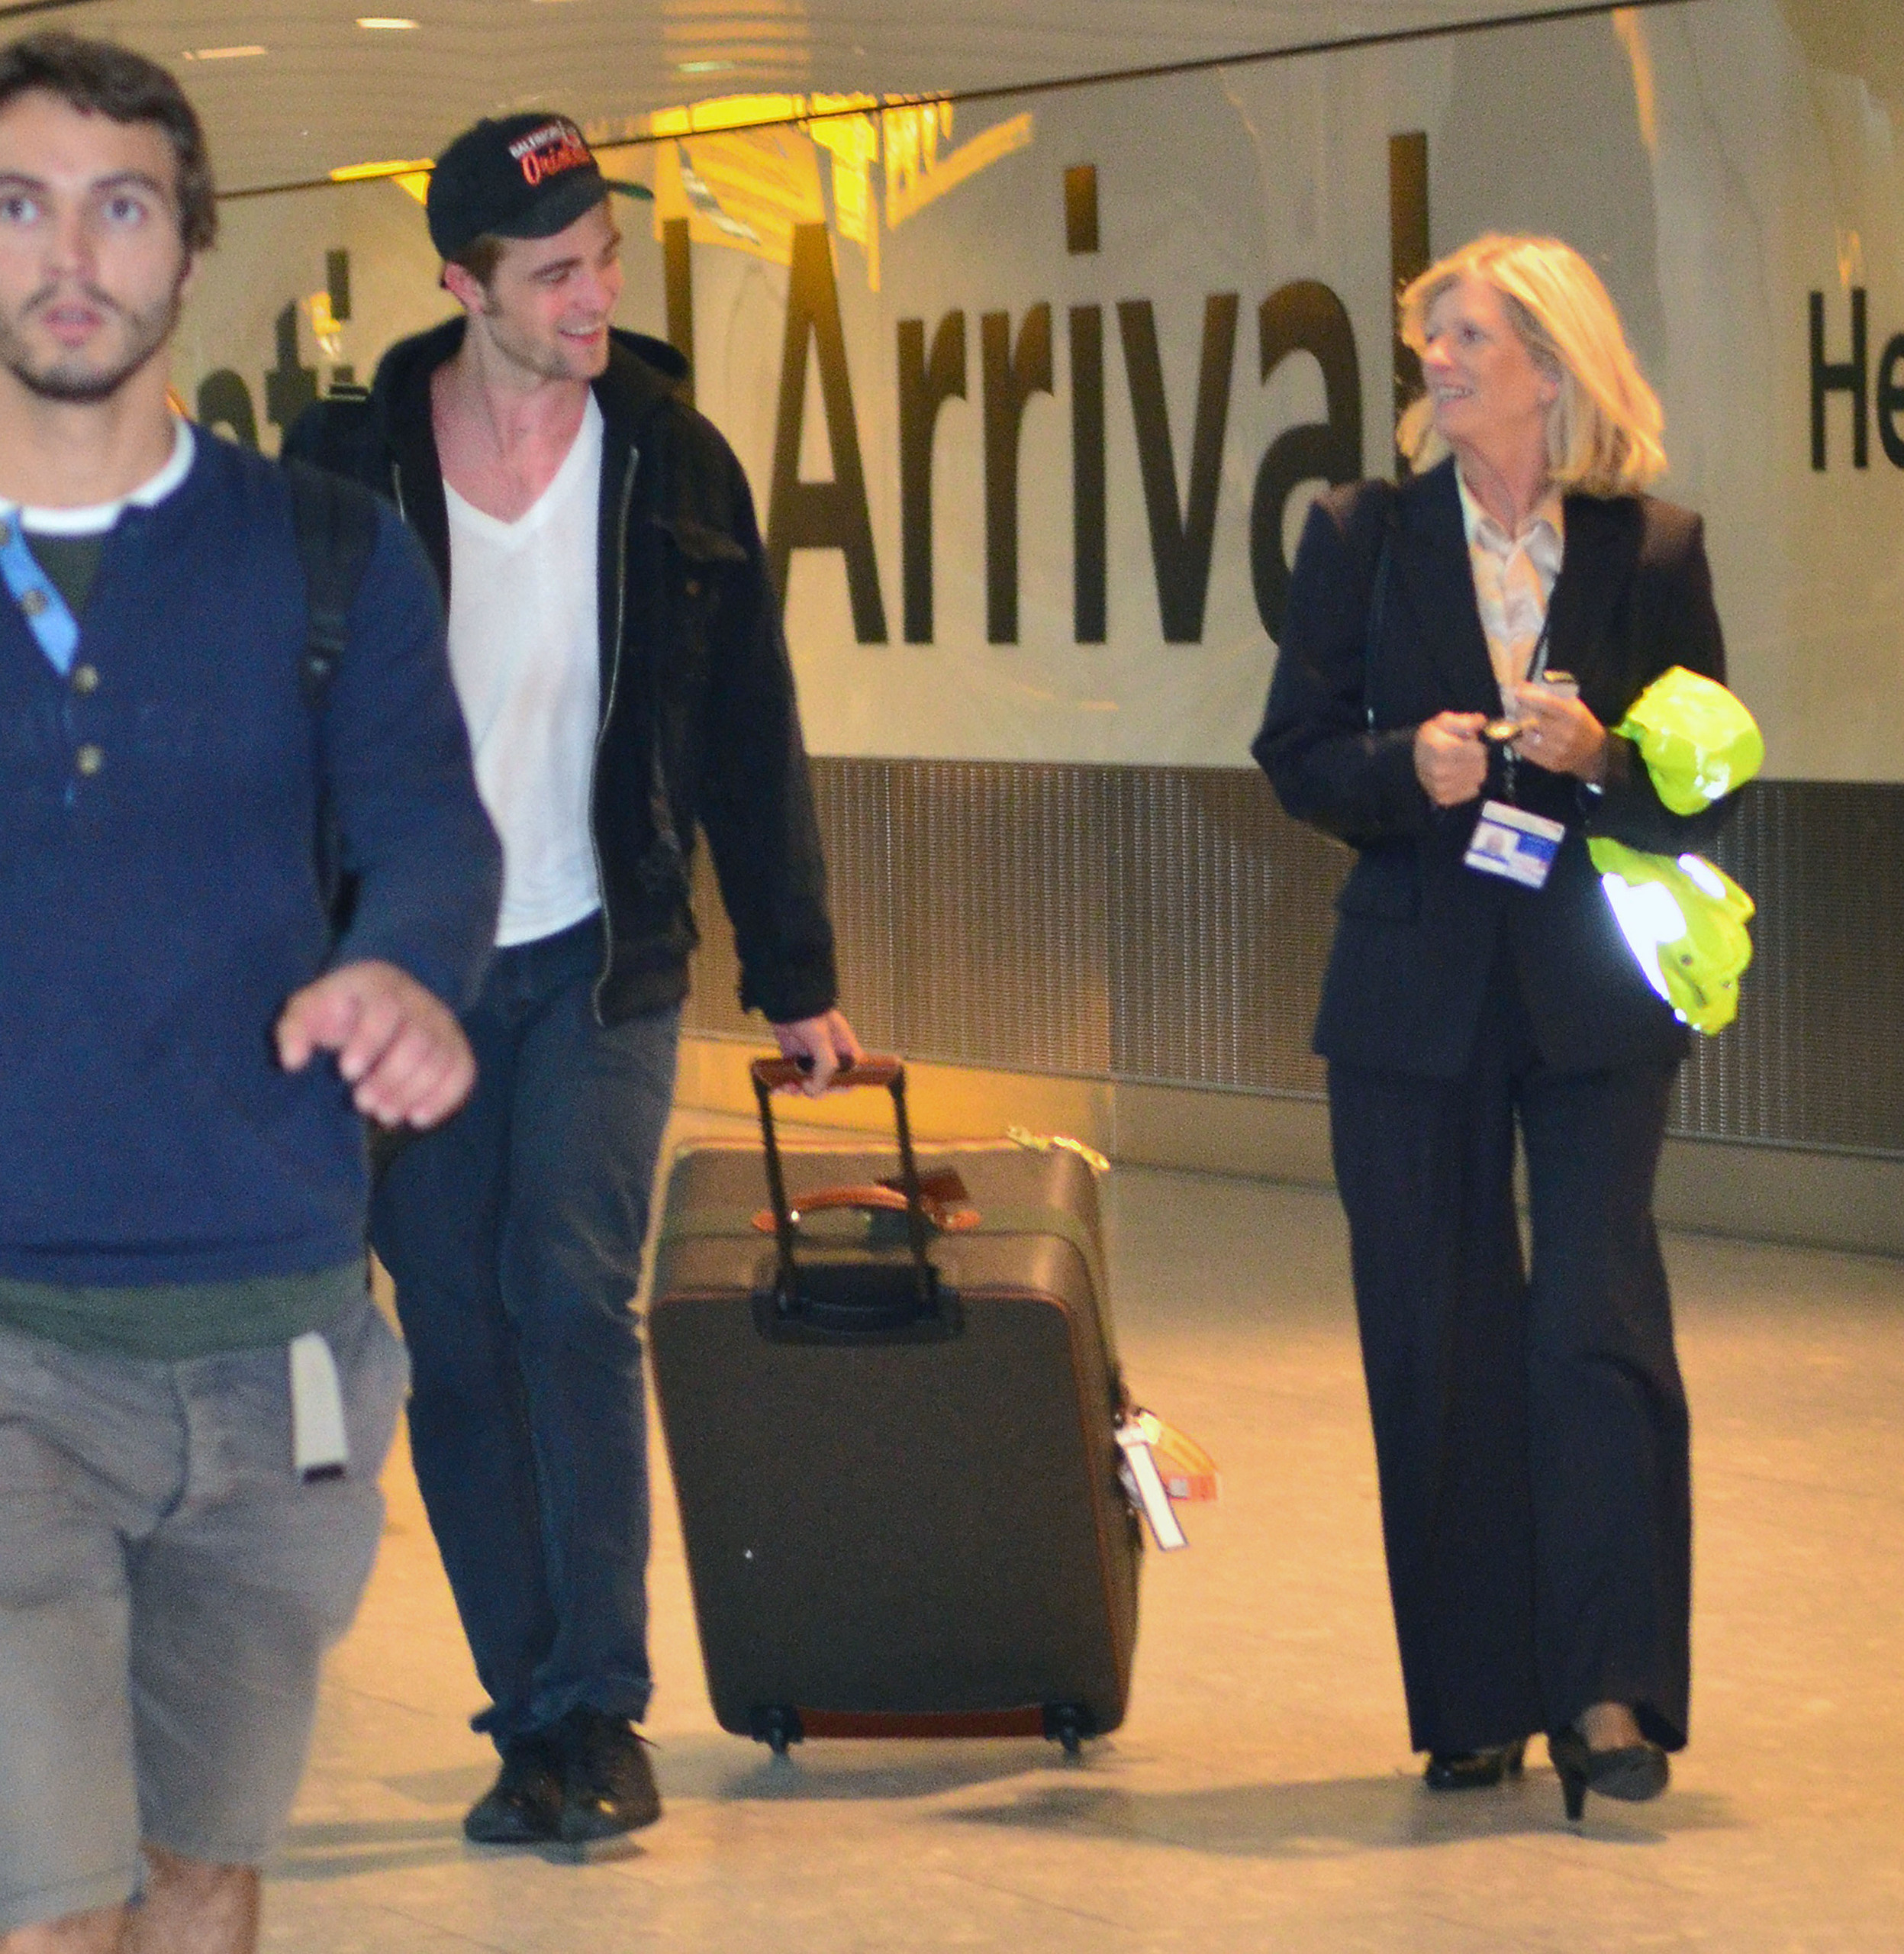 Untagged HQ's Of Robert Pattinson Arriving In Heathrow Airport Londres (Sept 4th)